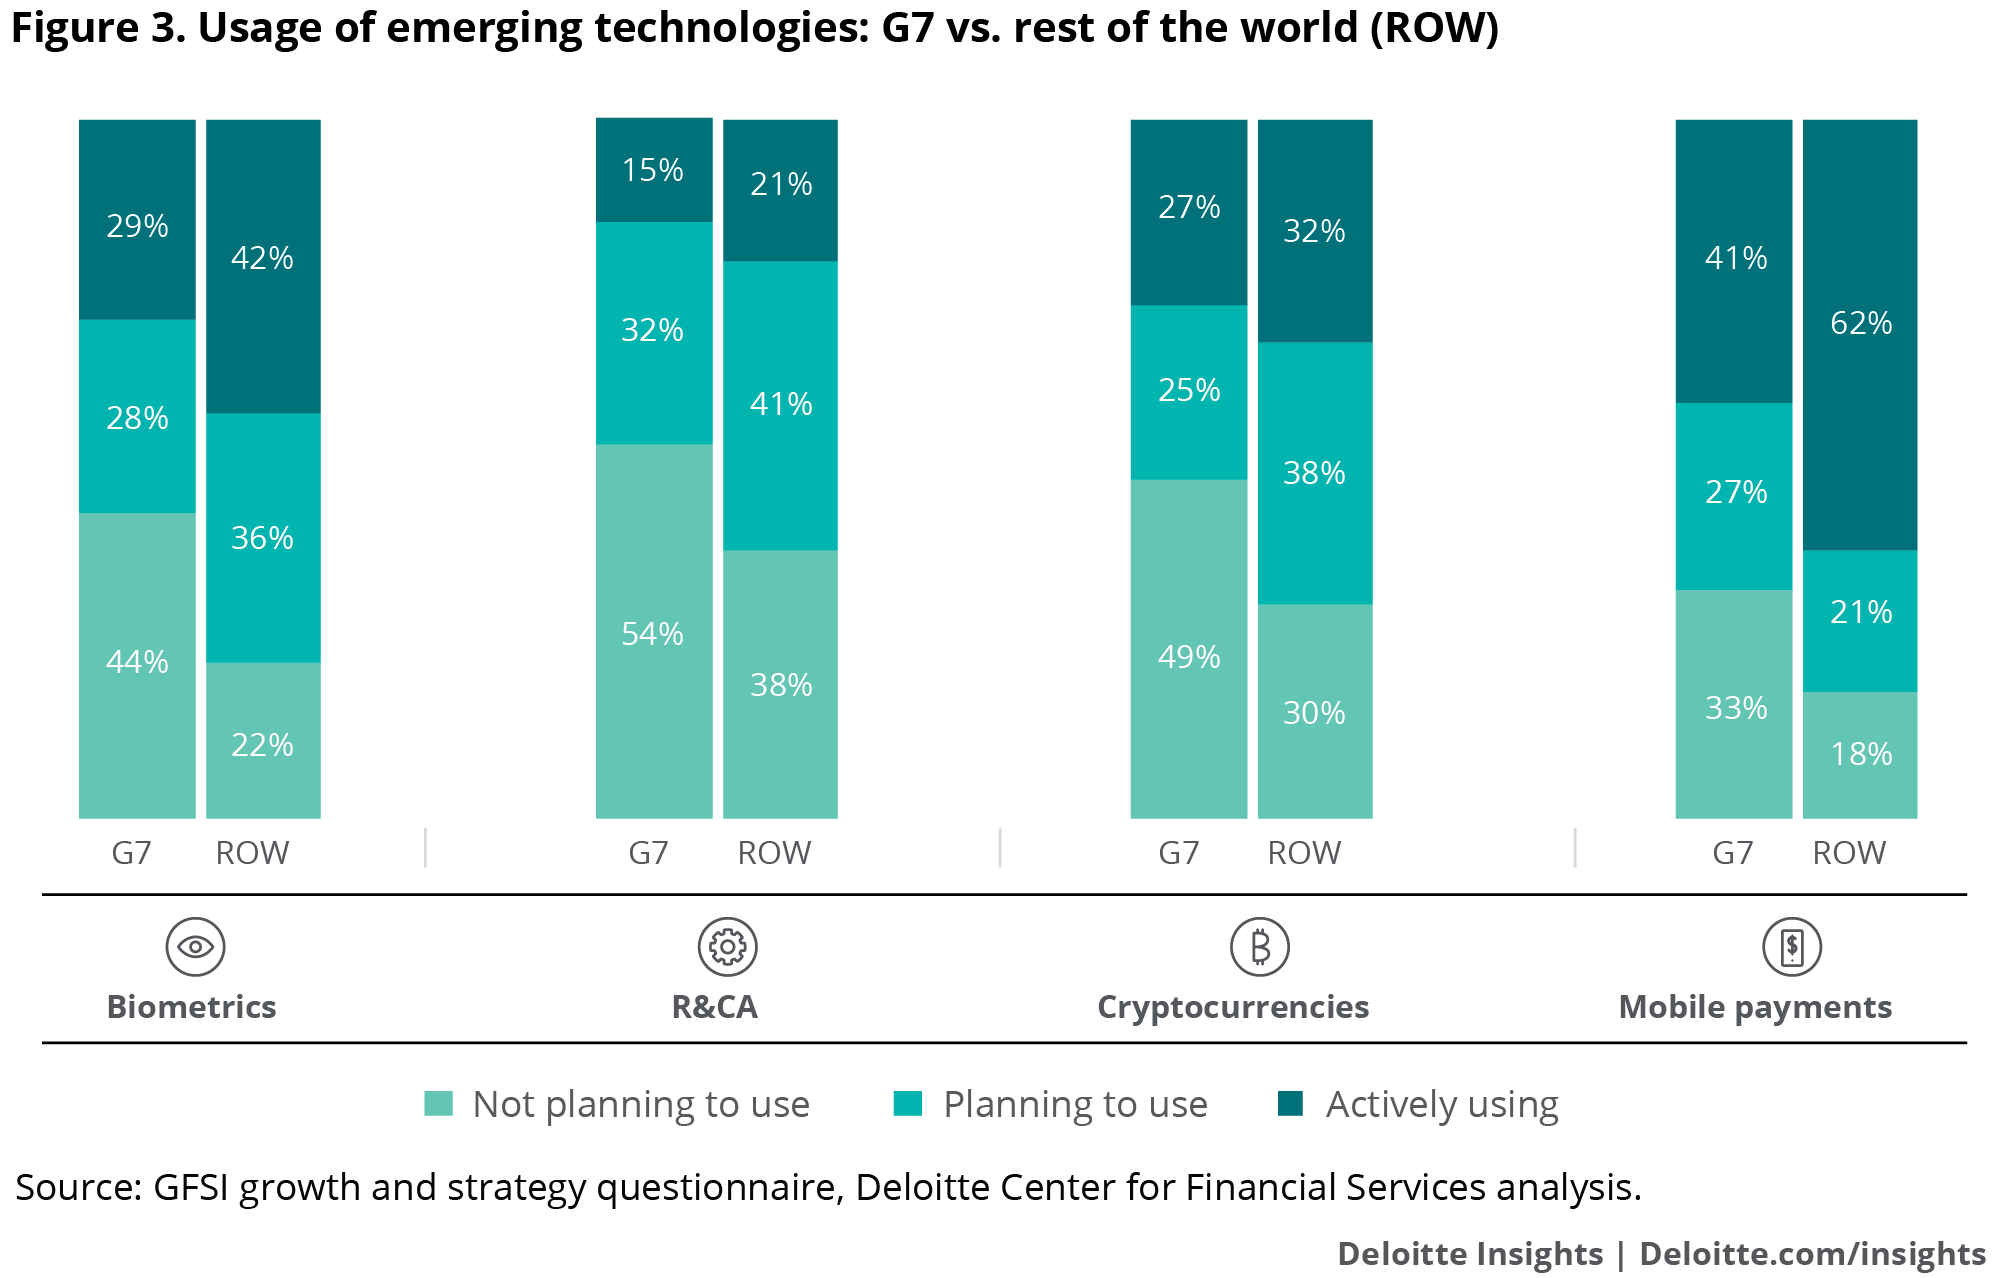 Rest of the world firms report more active use of, or plans to use, emerging technologies